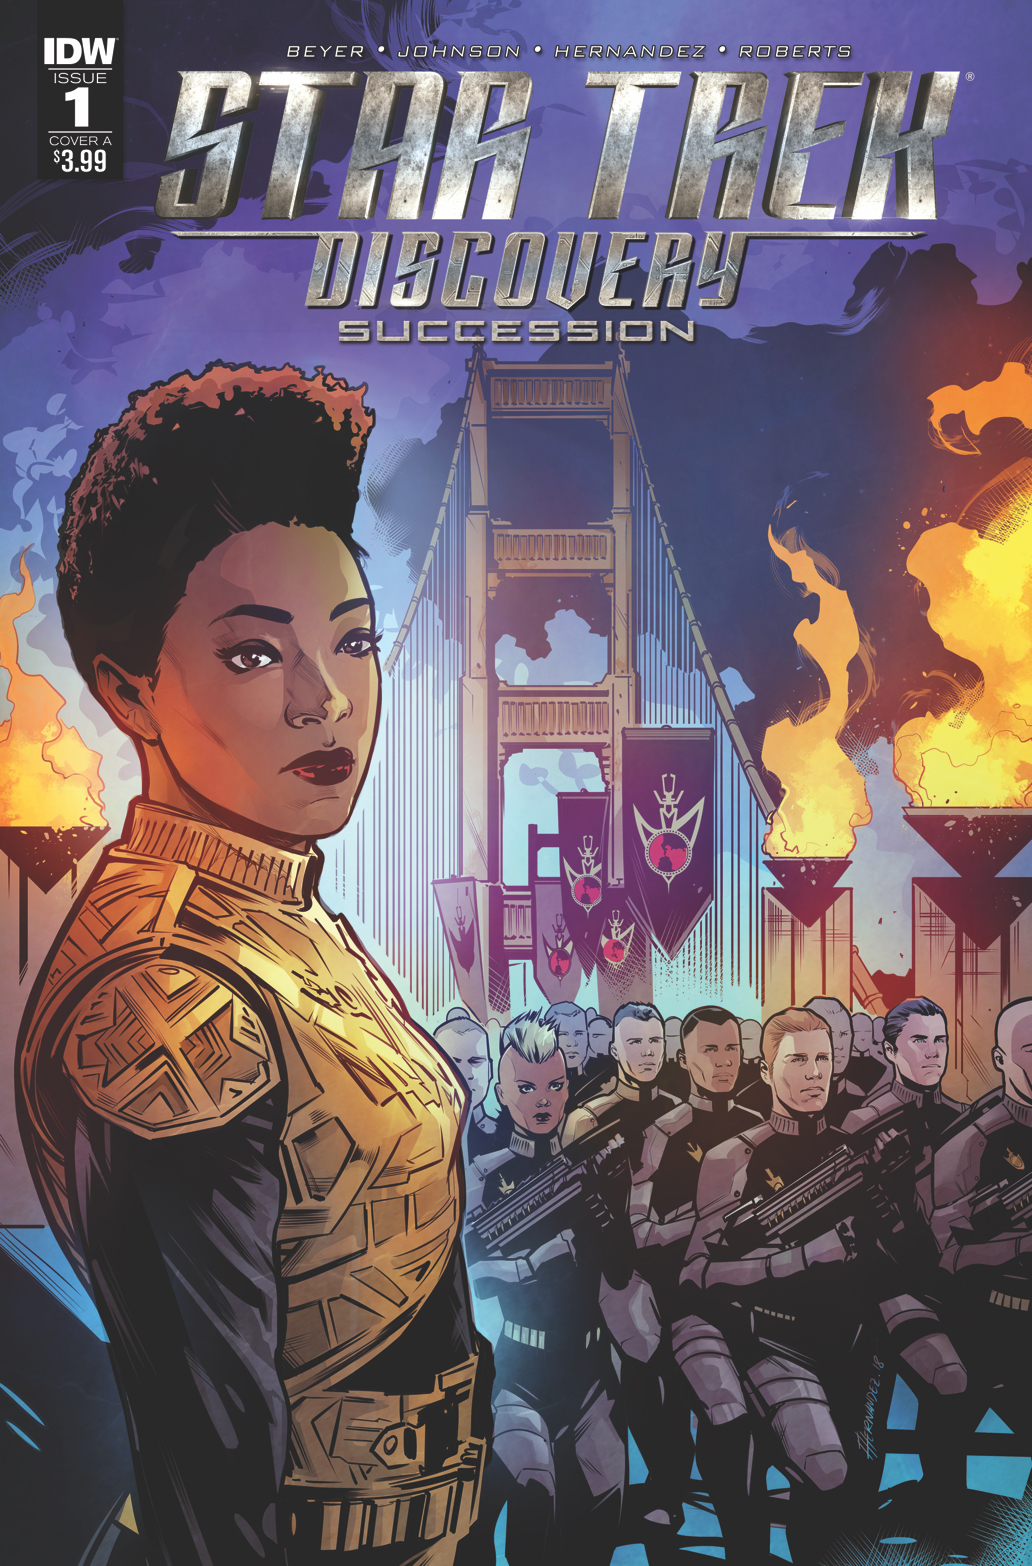 STAR TREK DISCOVERY SUCCESSION #1 CVR A HERNANDEZ